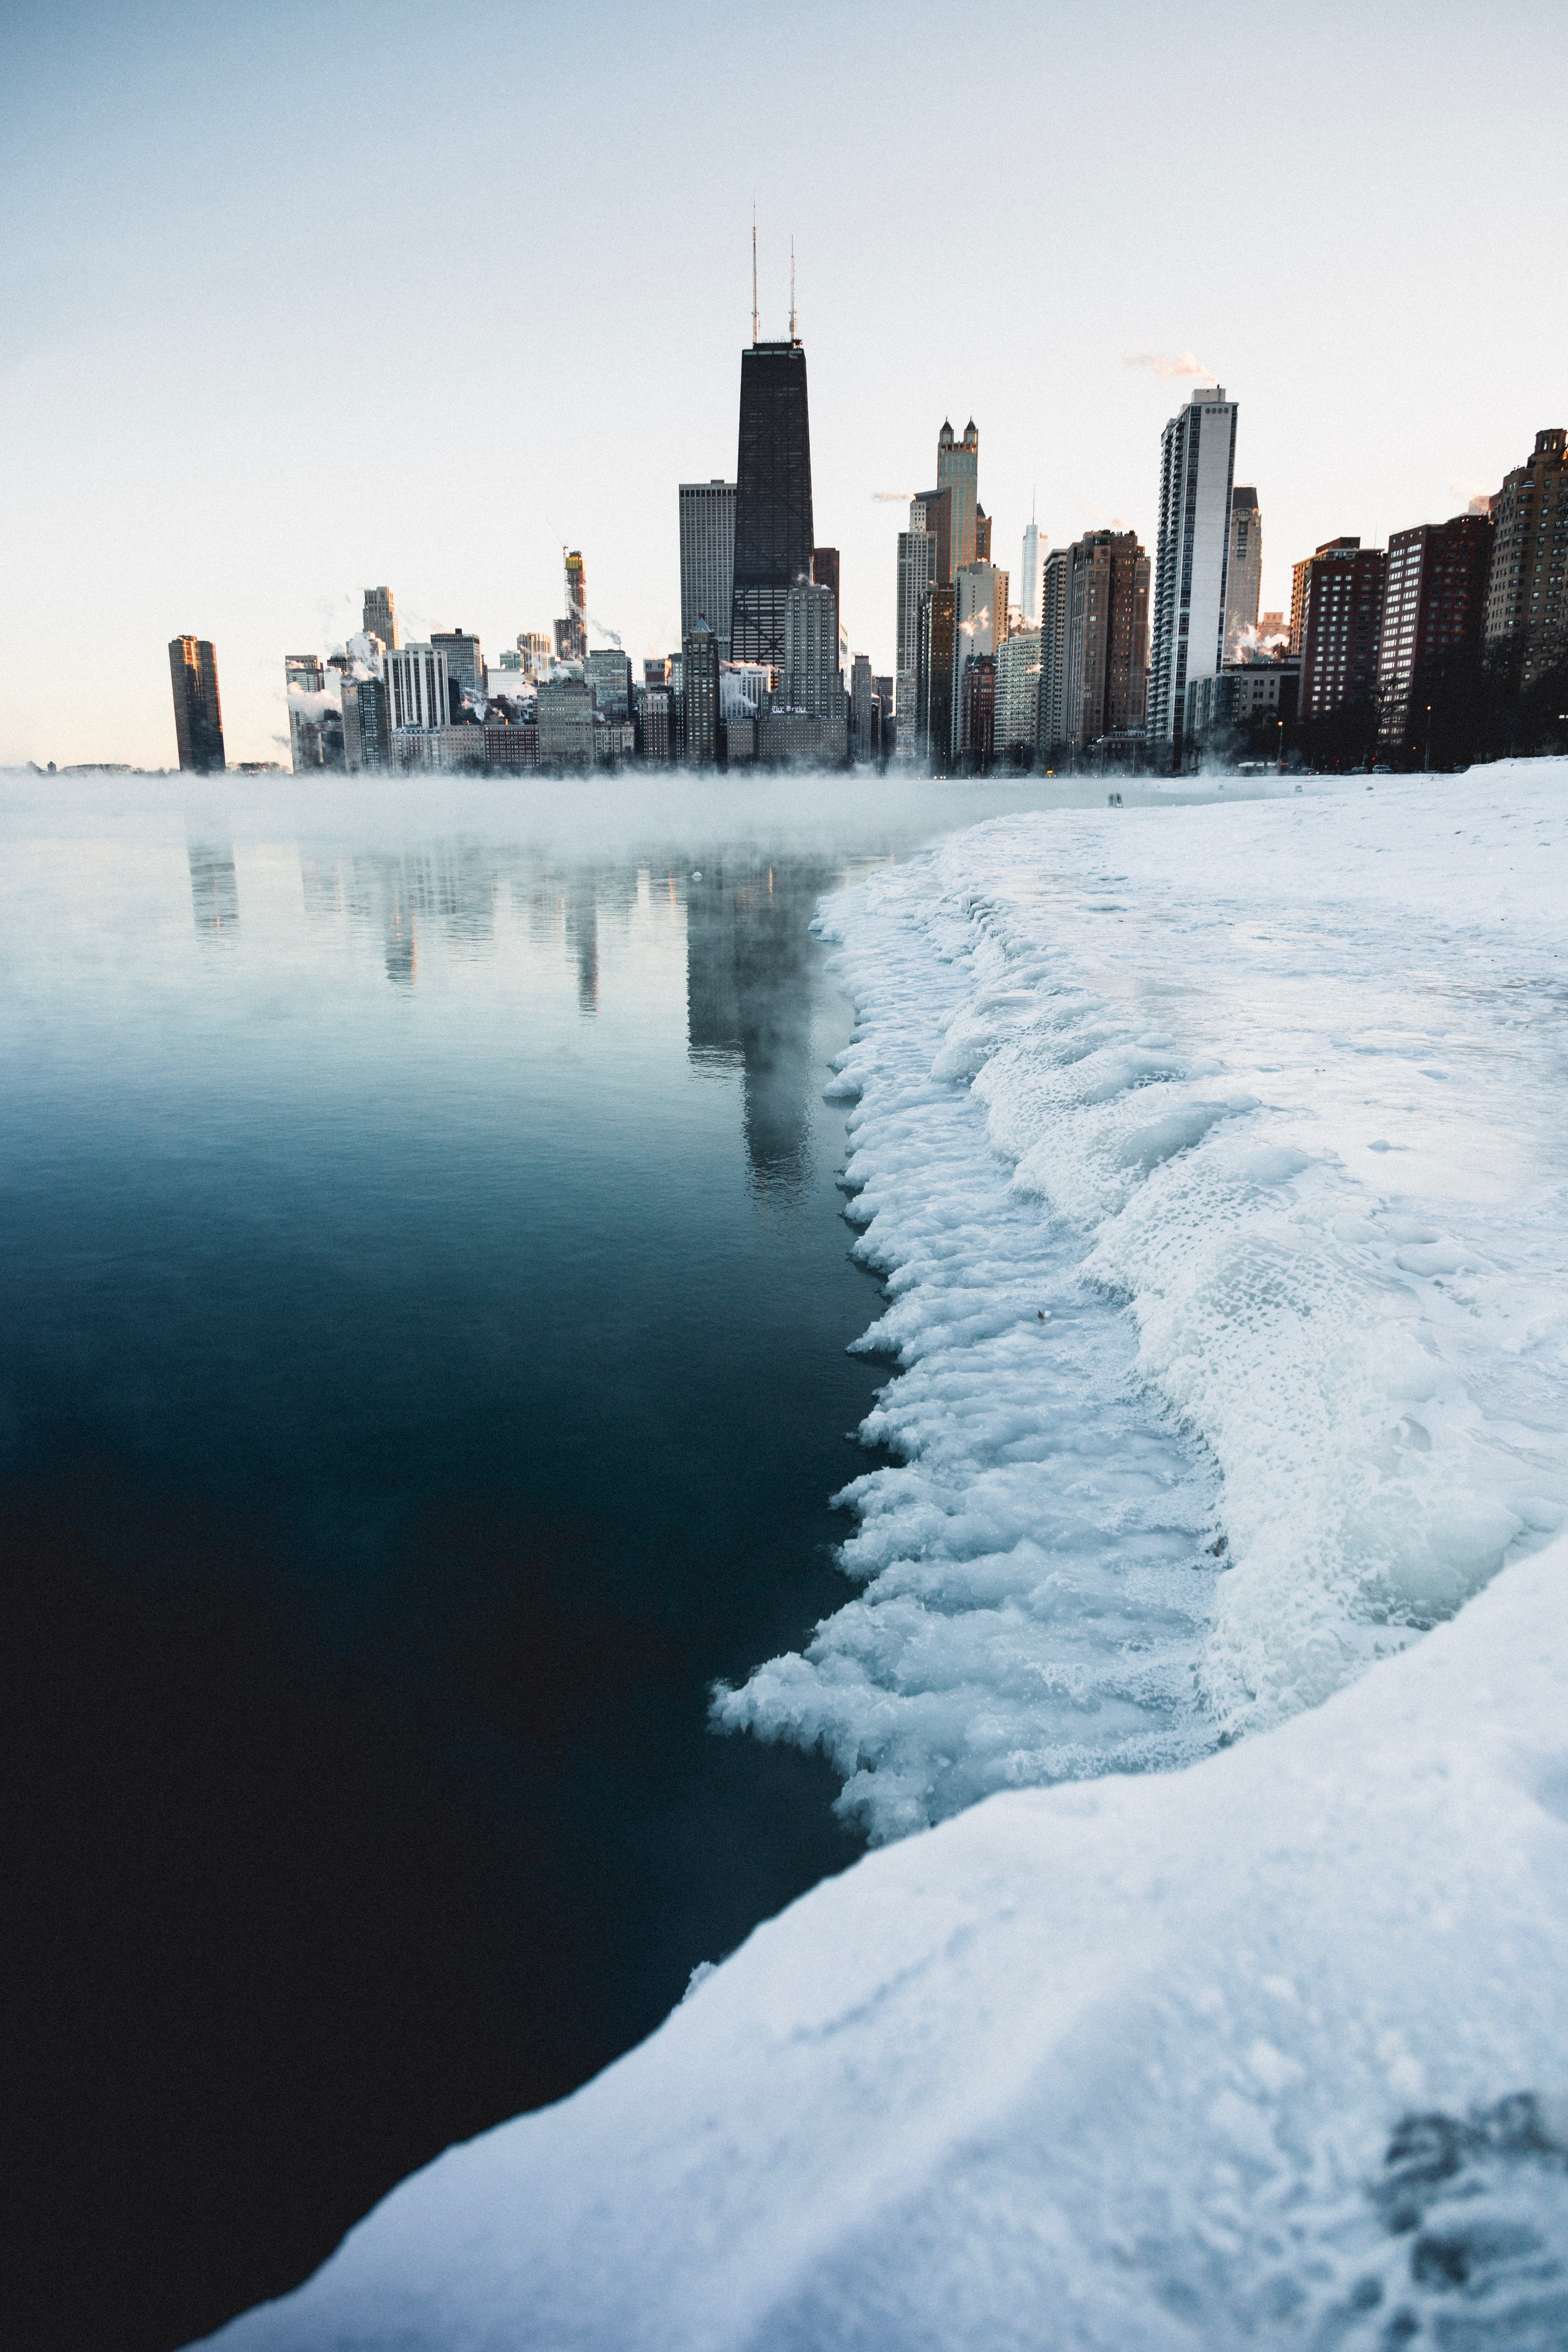 Photo of a city during winter